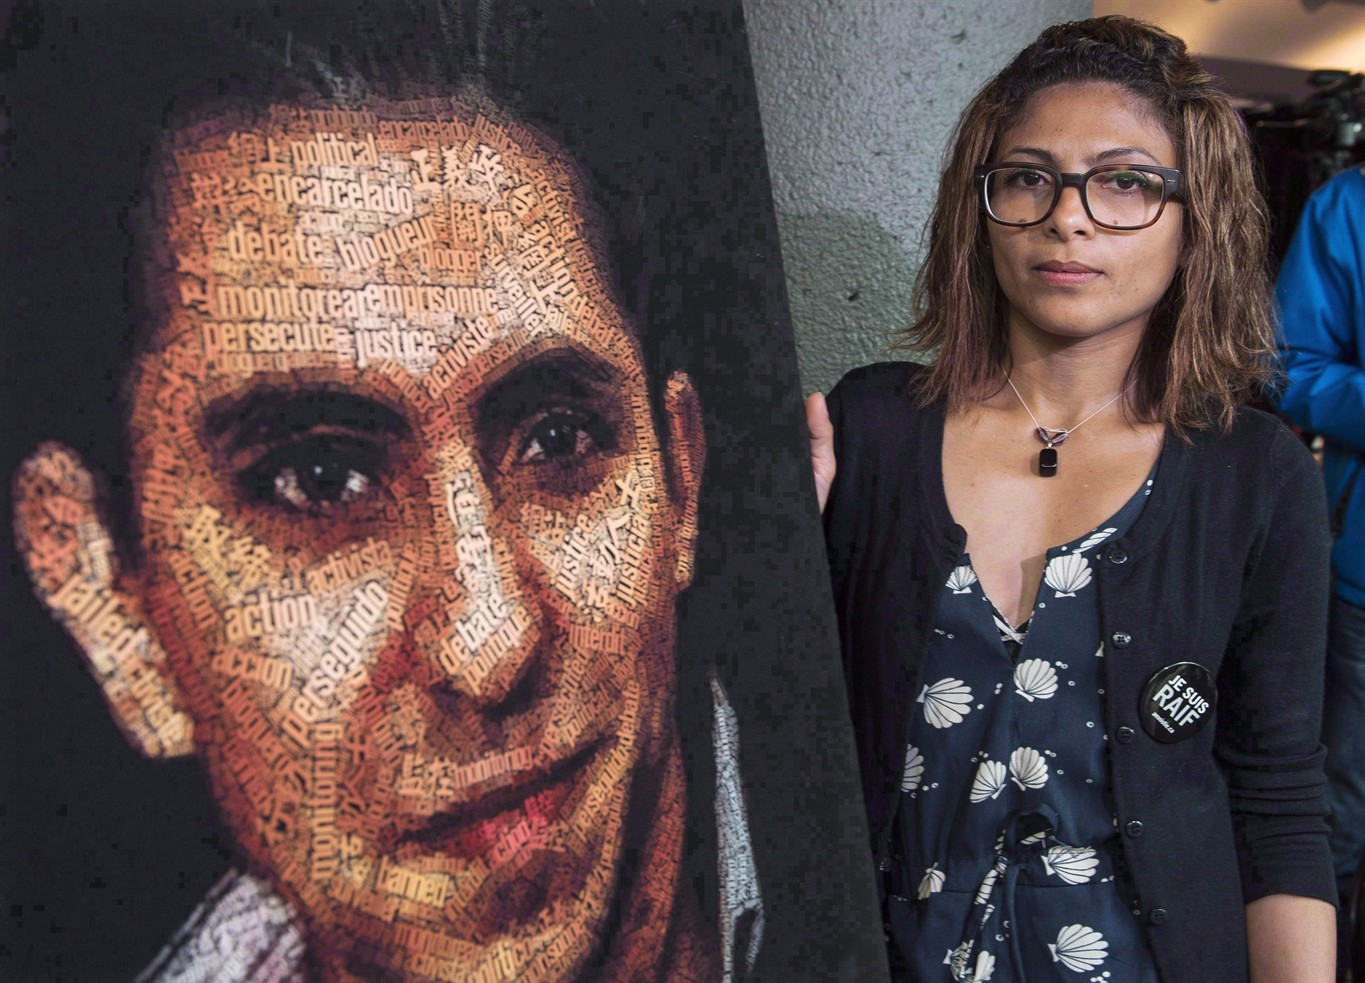 Supporters of jailed Saudi blogger Raif Badawi fear flogging set to resume